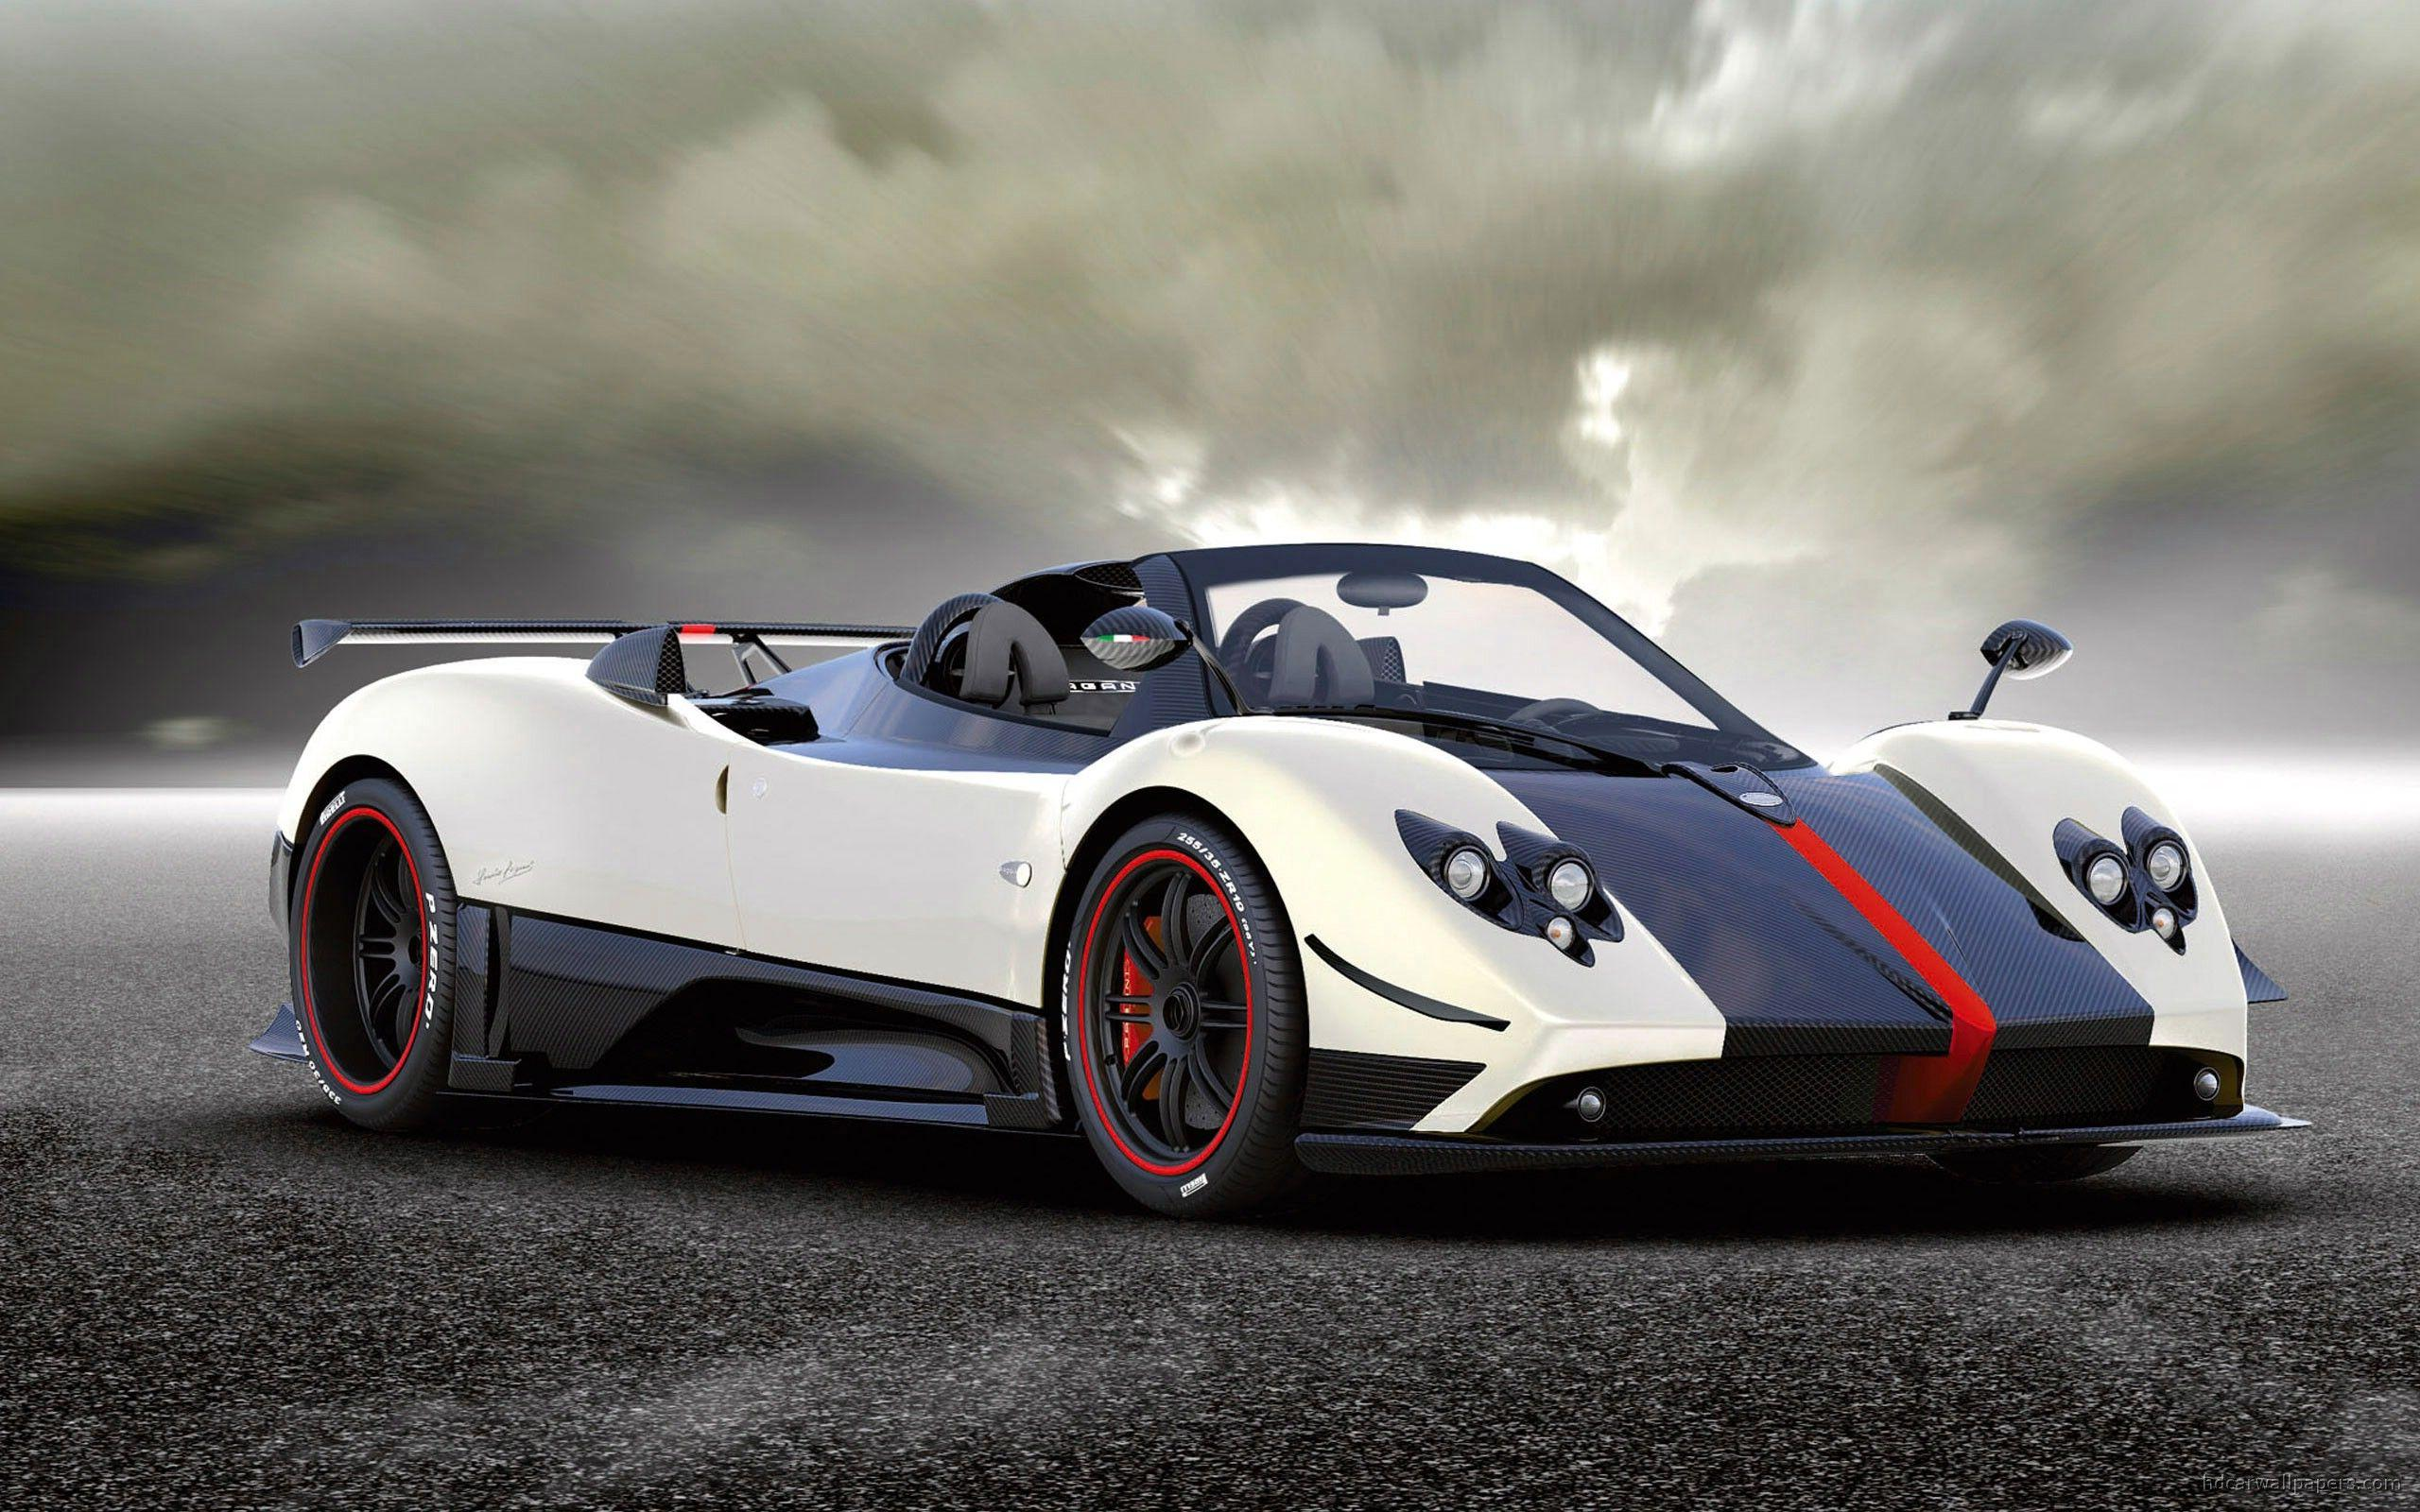 Charmant Pagani Zonda R Wallpaper   WallpaperSafari